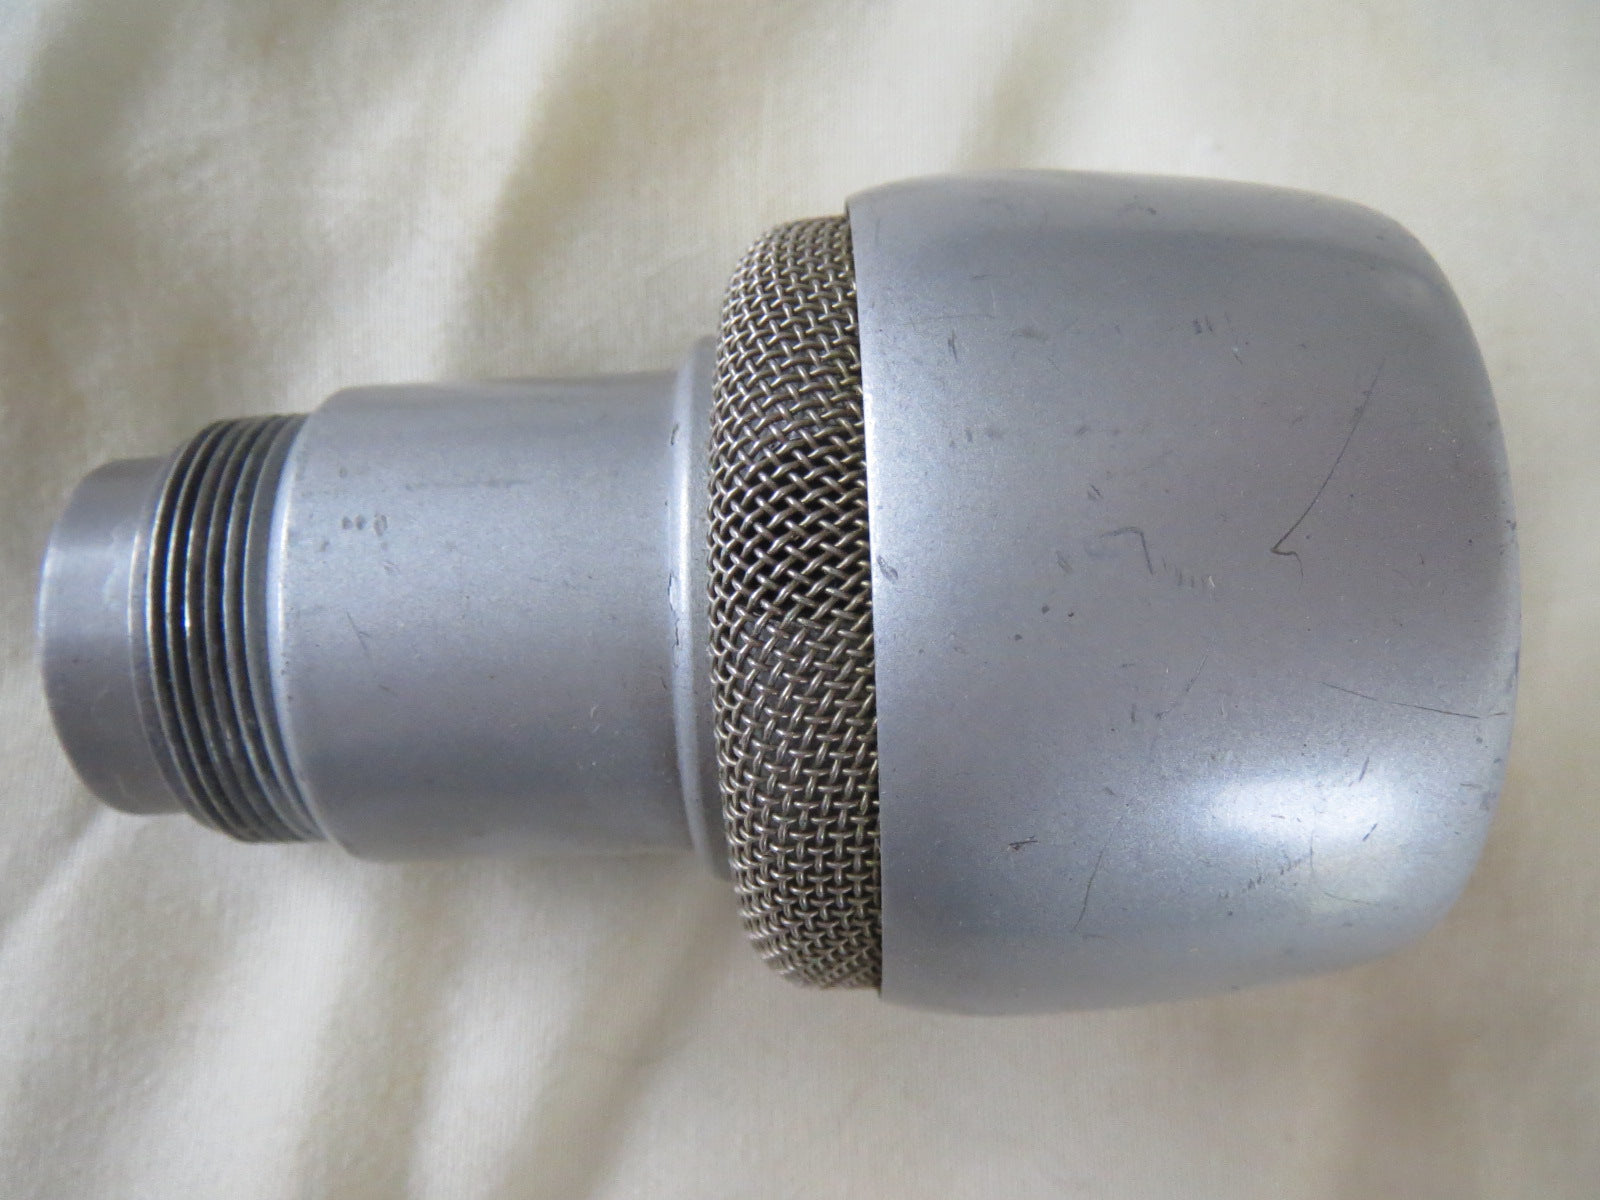 SENNHEISER MD42 RARE VINTAGE DYNAMIC MICROPHONE WITH XLR ADAPTER CABLE